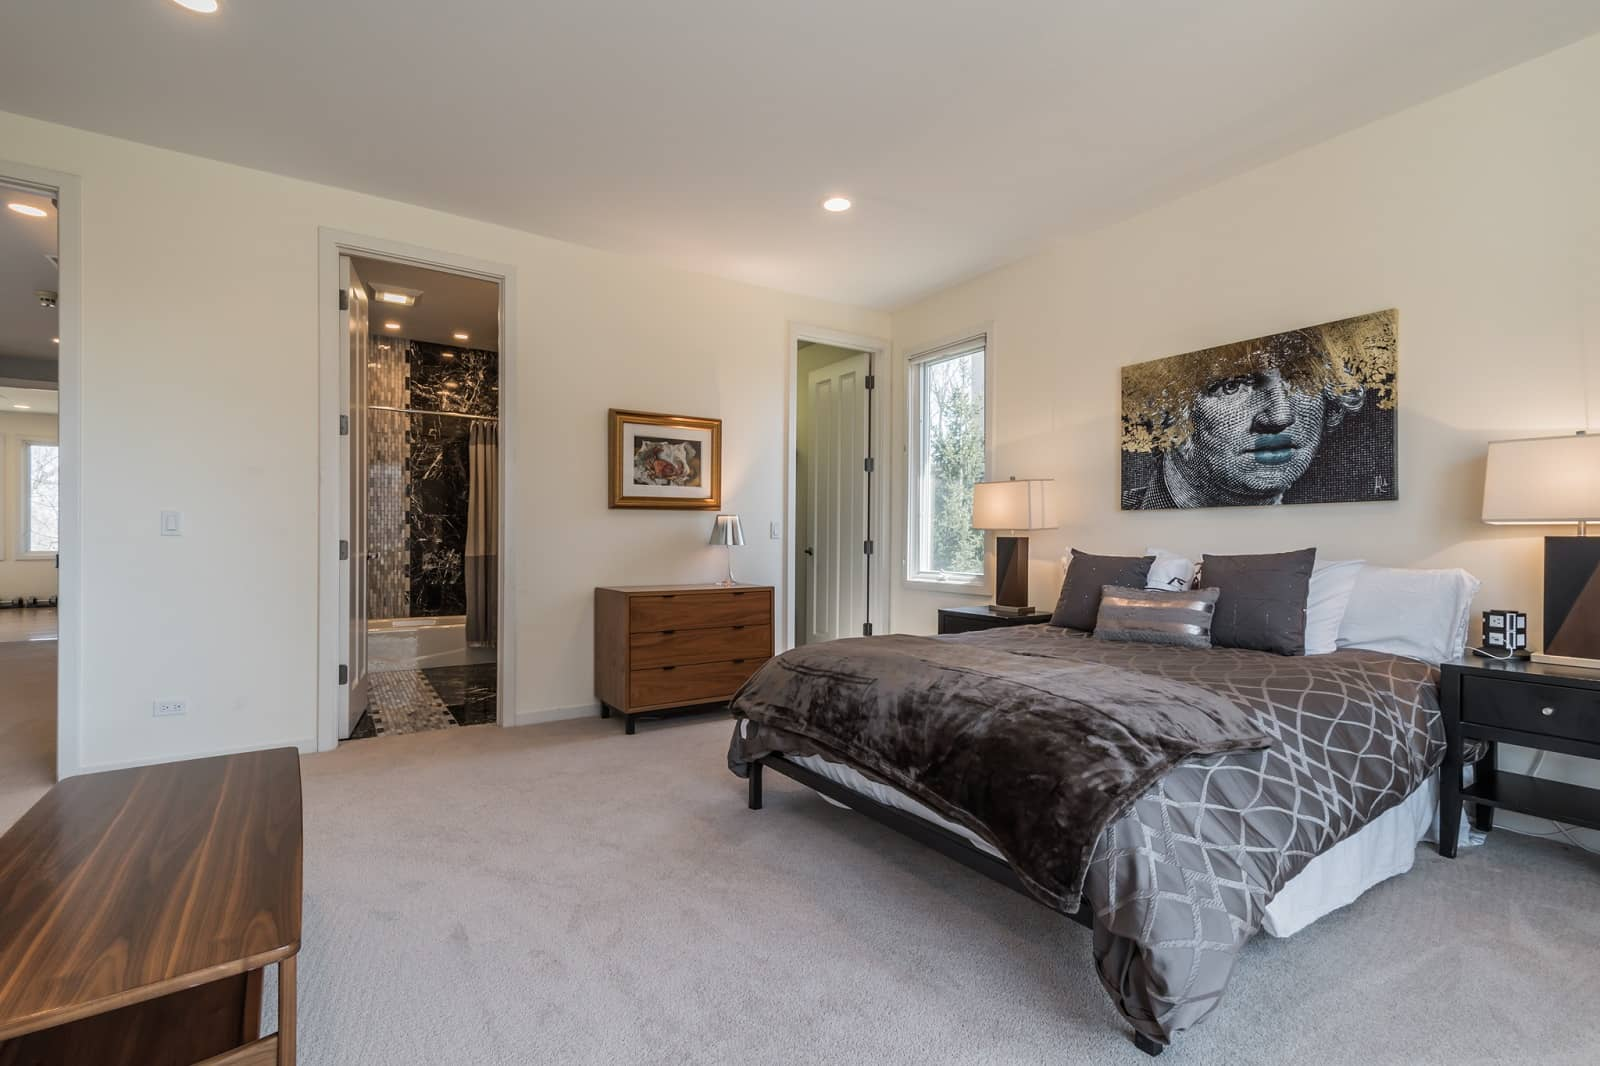 Real Estate Photography in Waukegan - IL - USA - Bedroom View